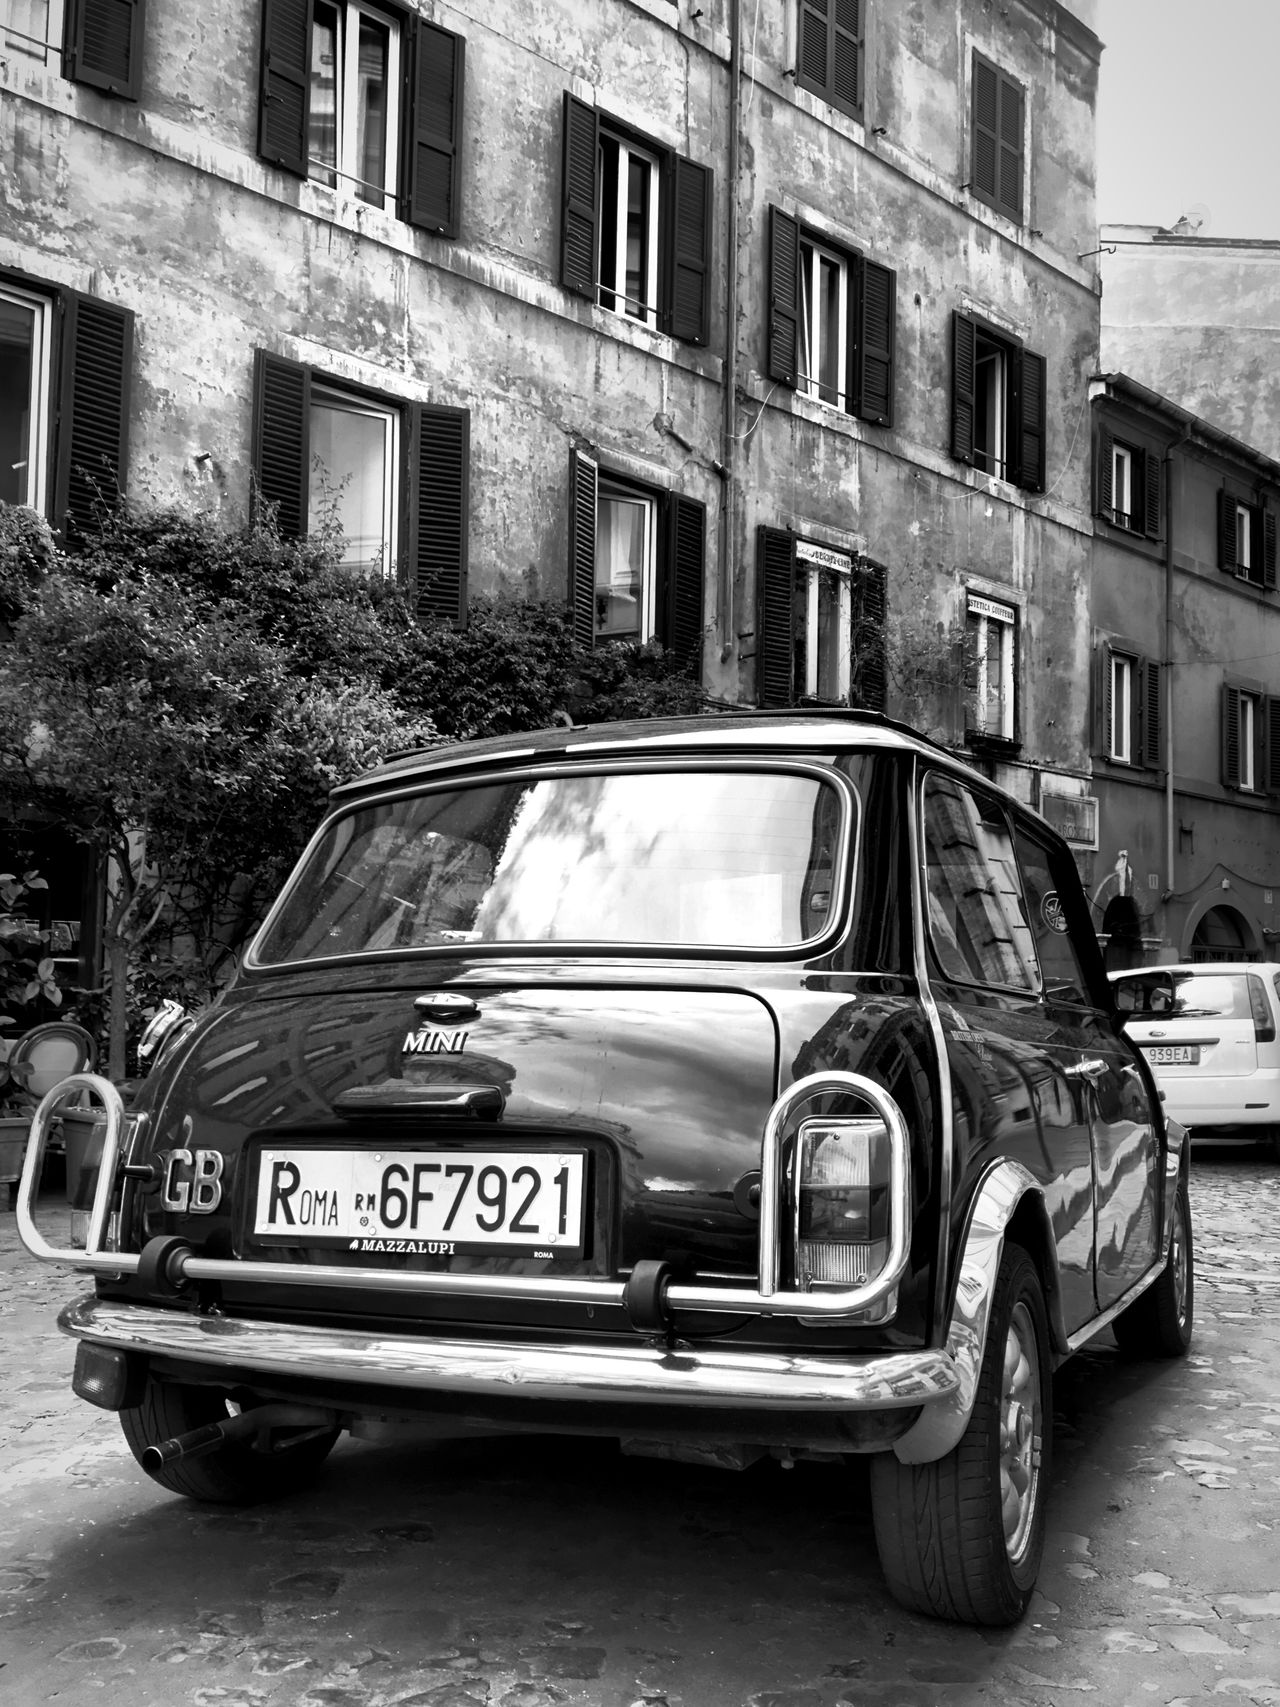 When in Rome 007 Rome Italy Architecture Transportation VSCO Shootermag Blackandwhite Photography Black & White Street Black And White City AMPt - Street